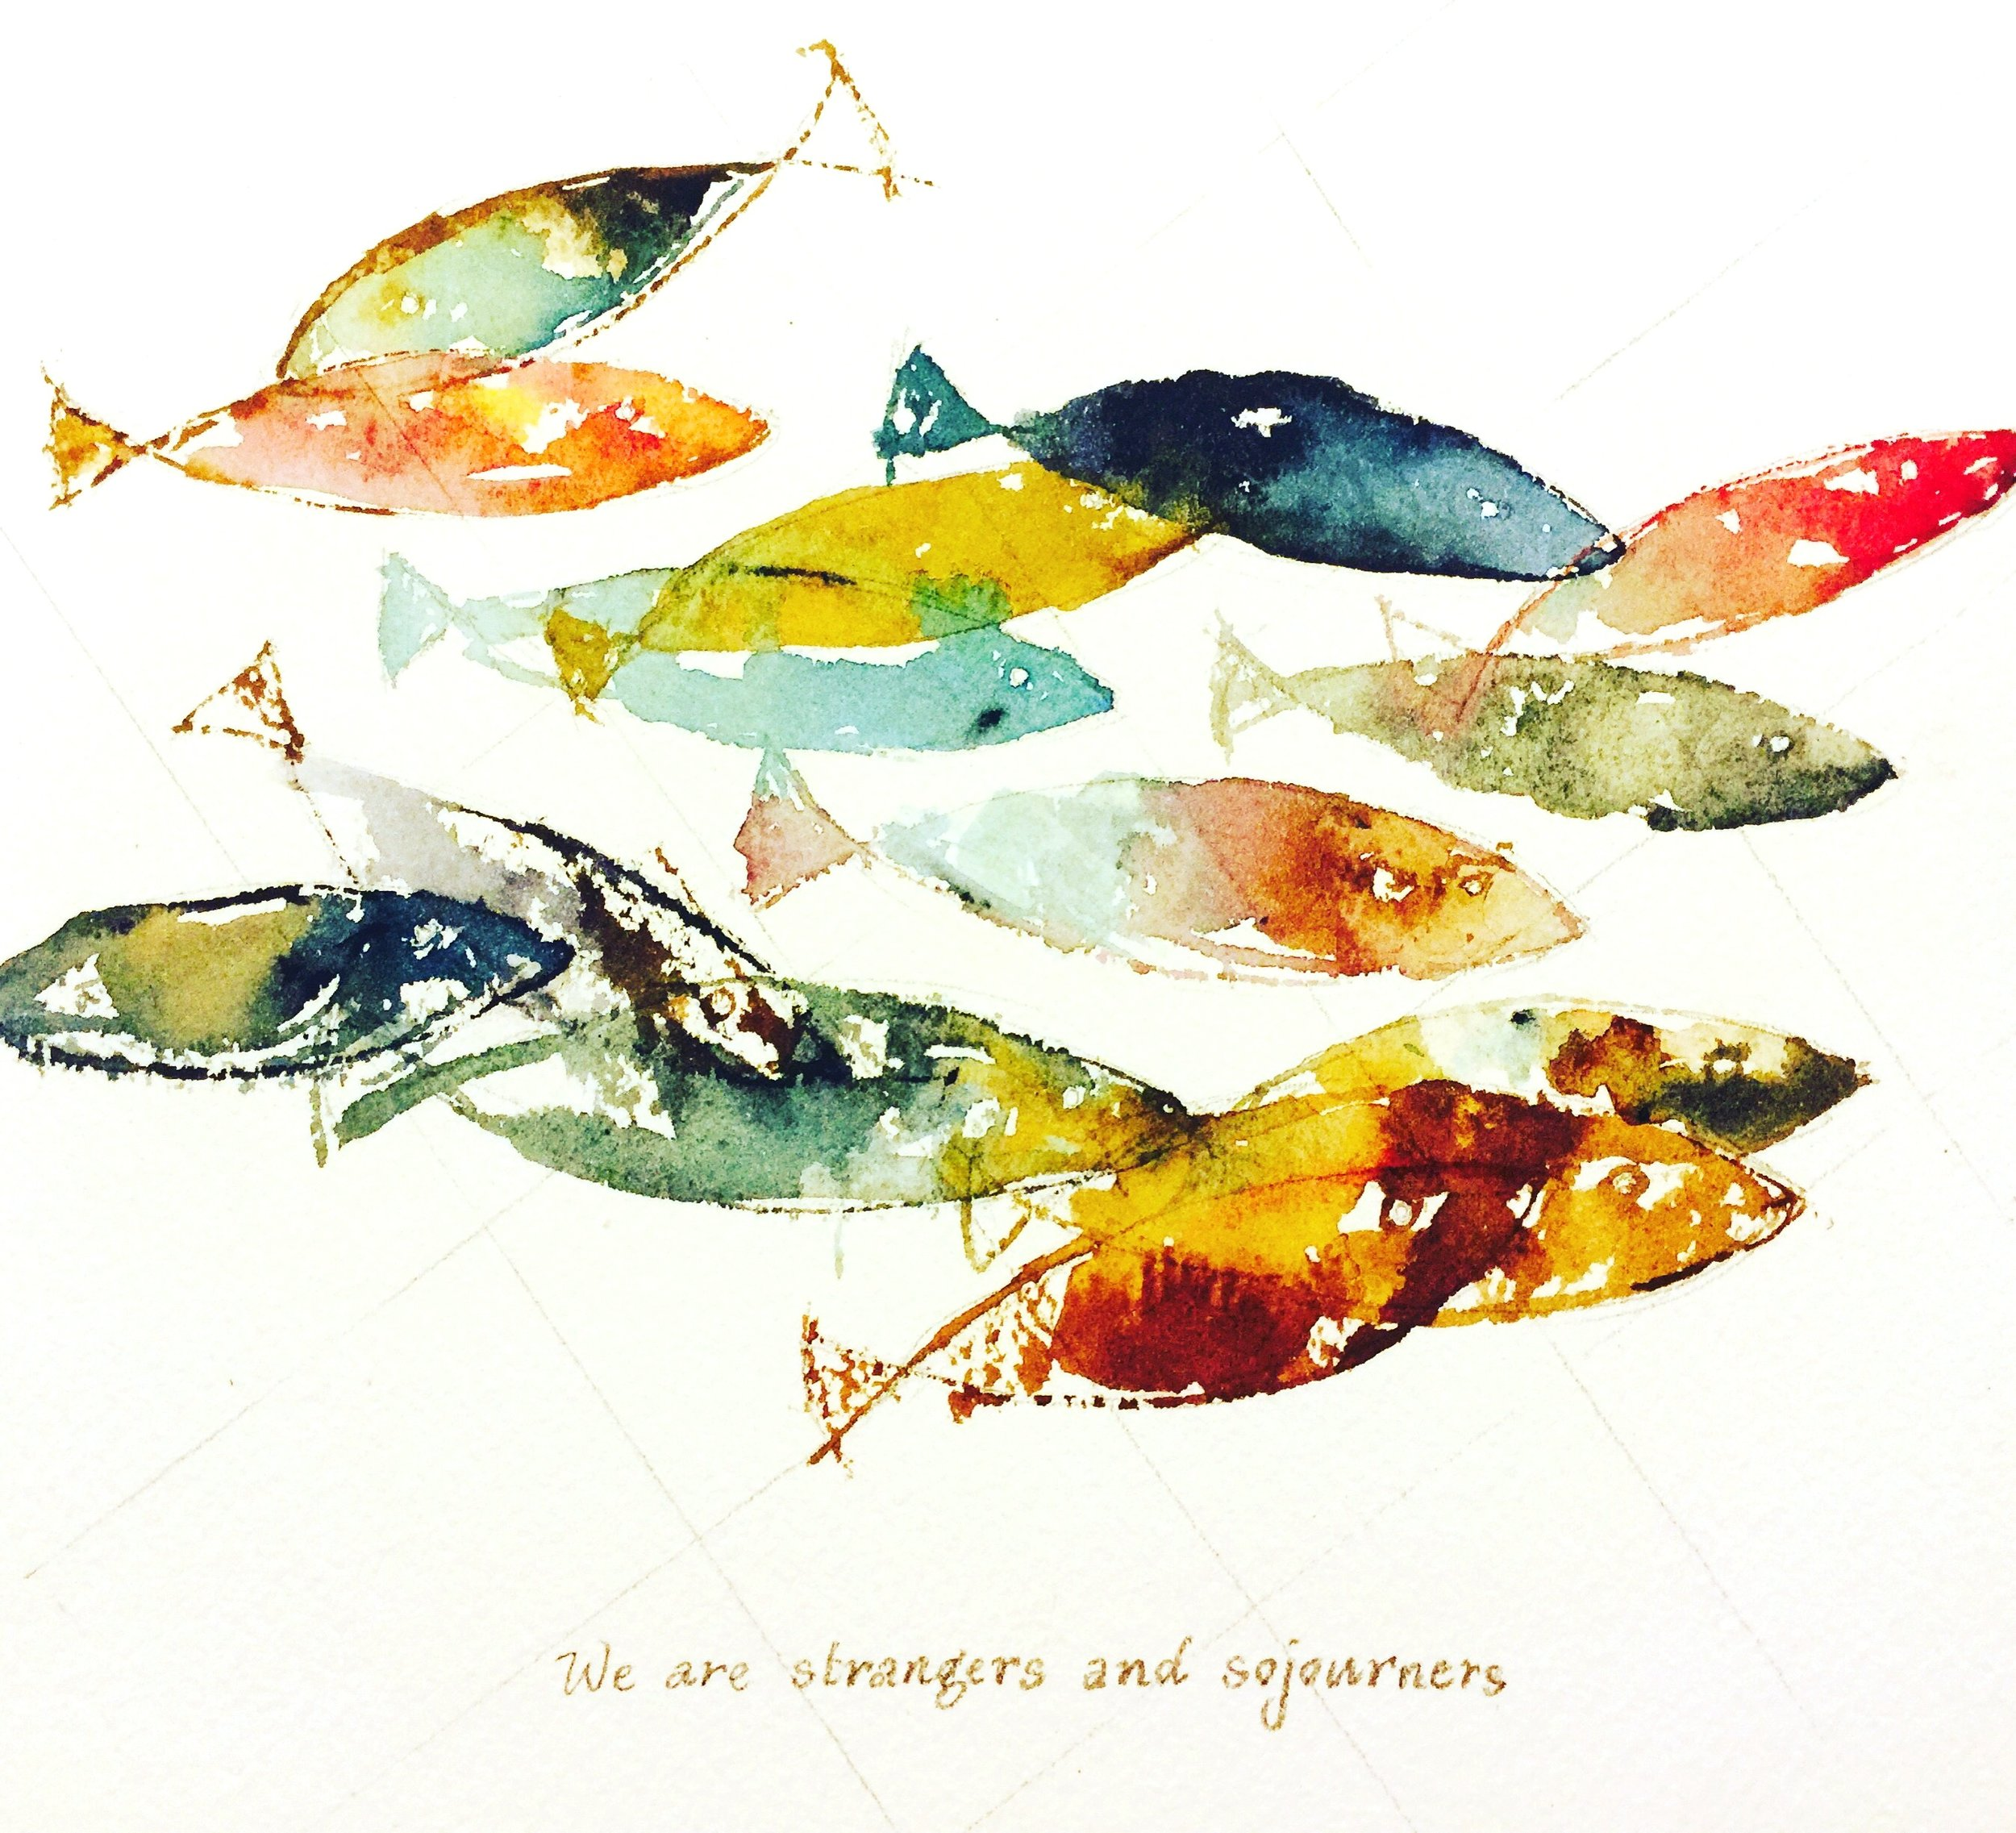 Fish - Strangers and Sojourners, 2016